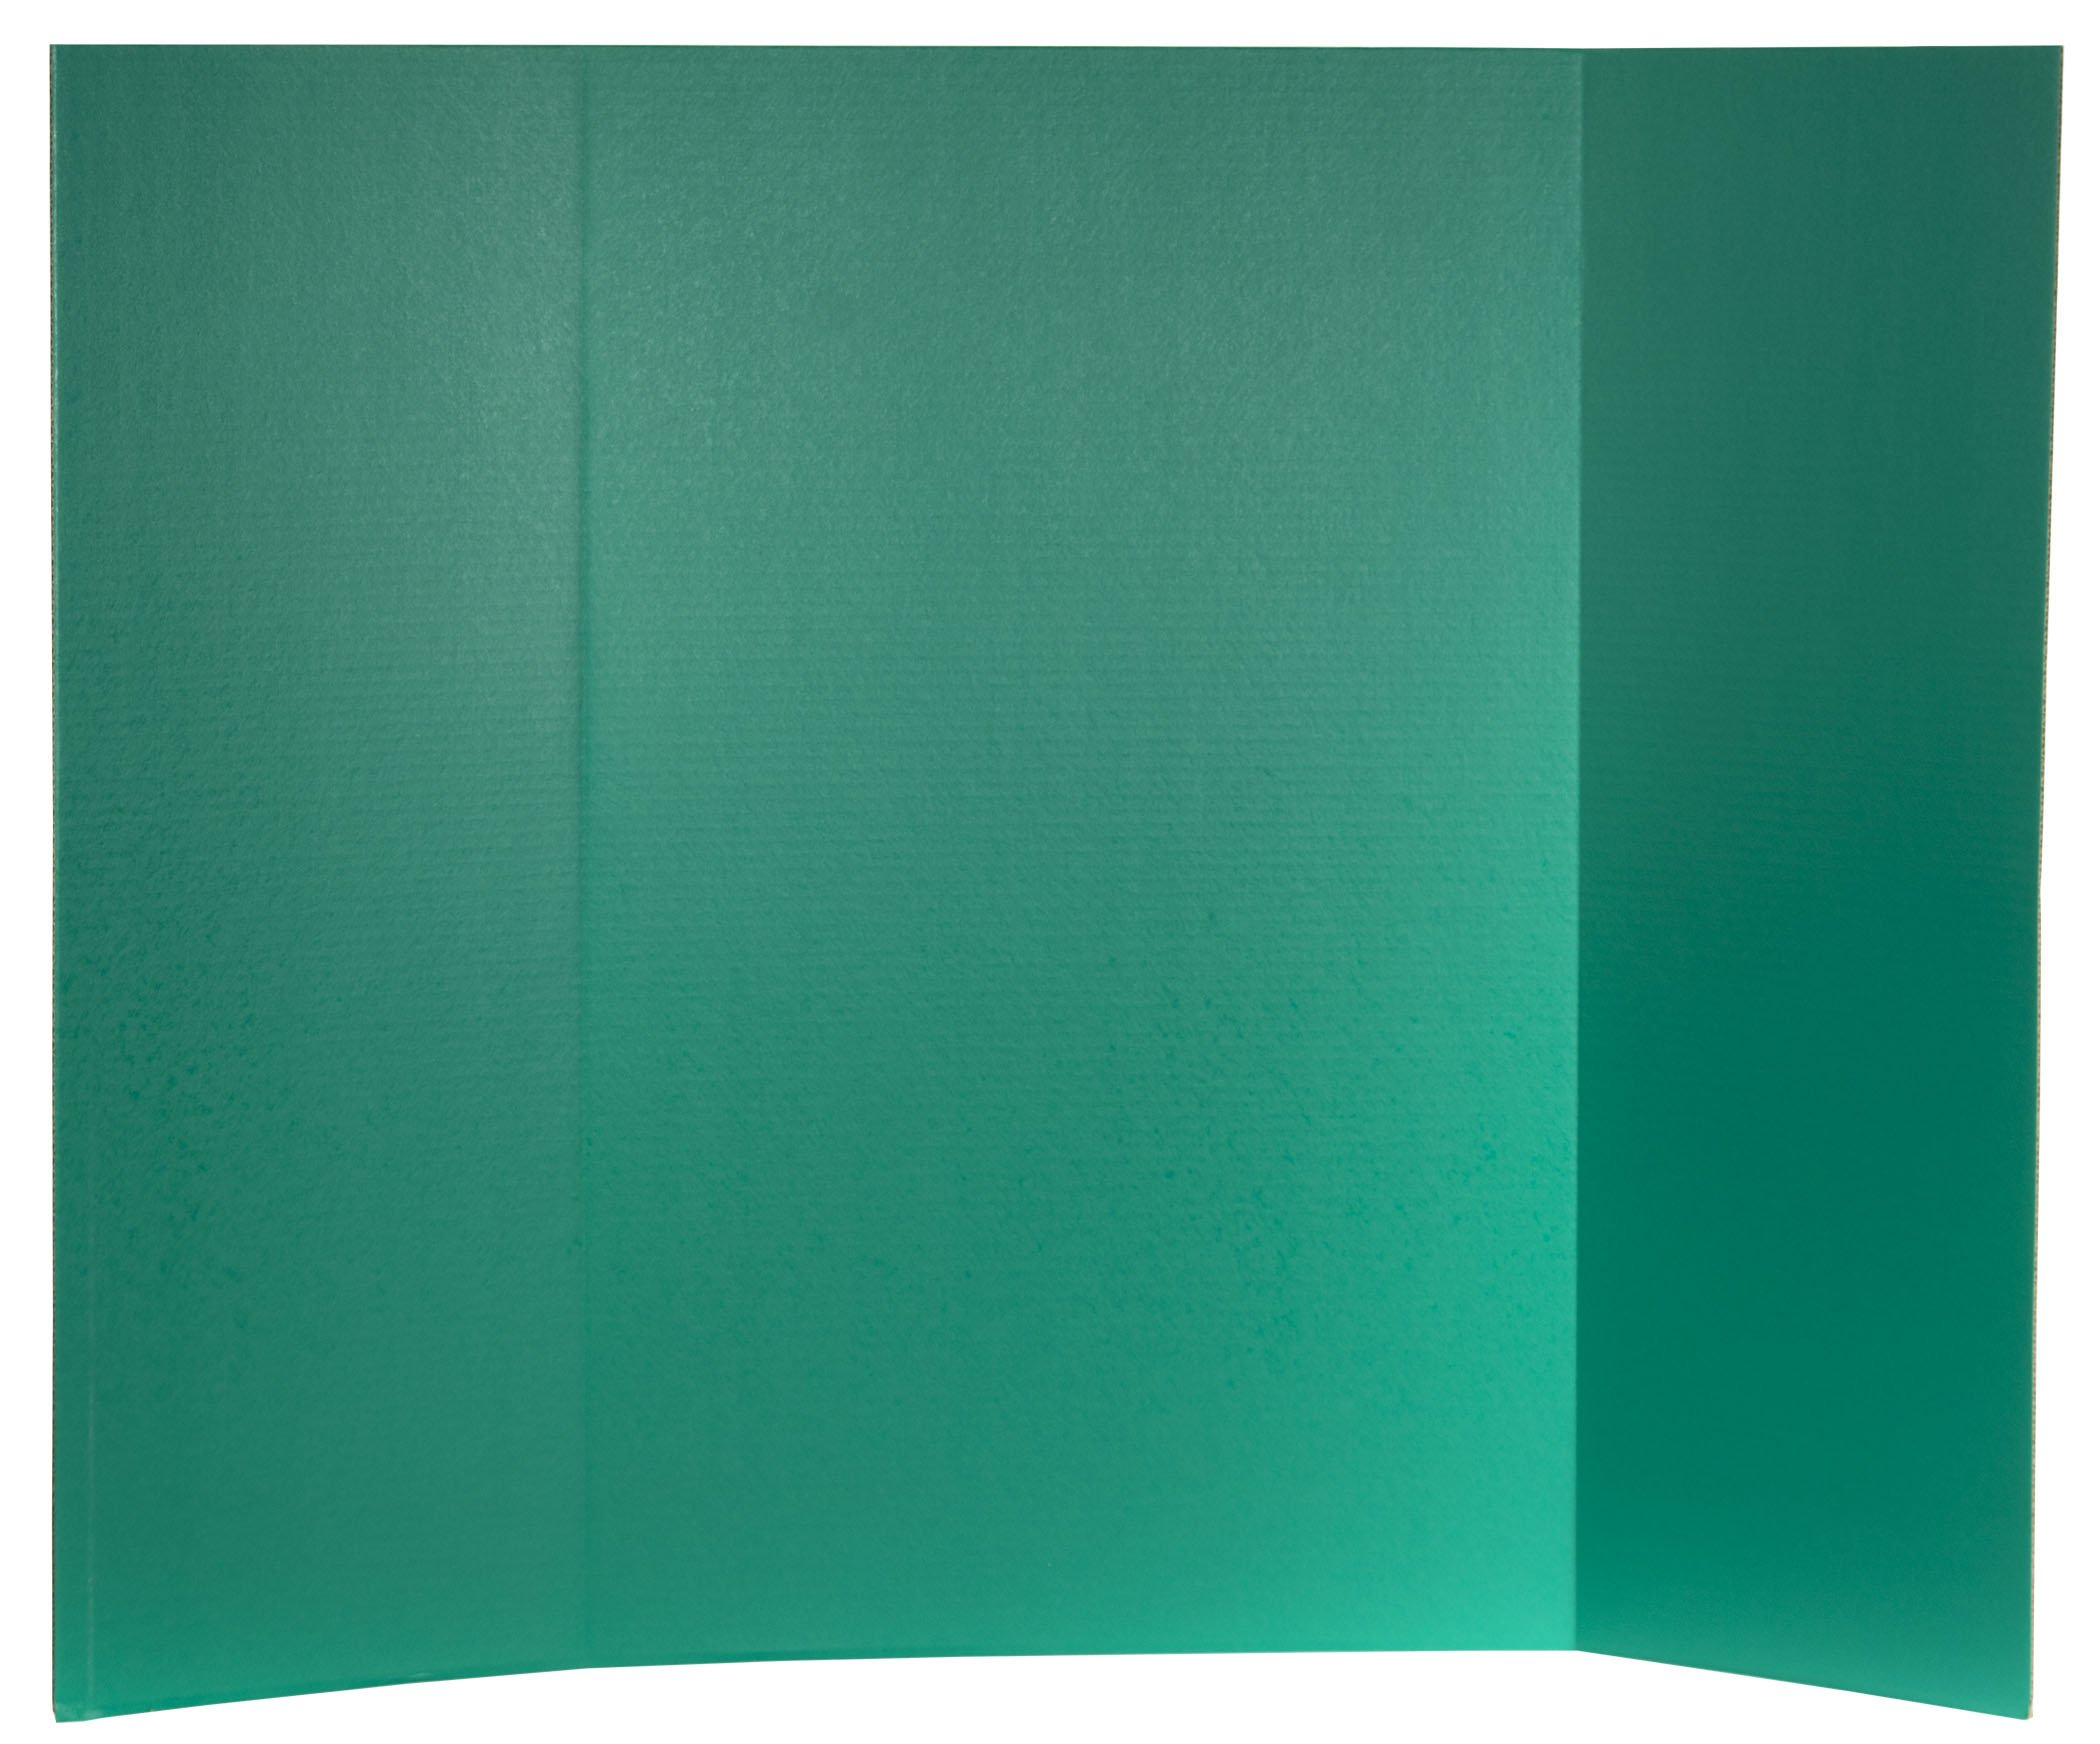 Flipside Products 30068 Project Display Board, Green (Pack of 24)